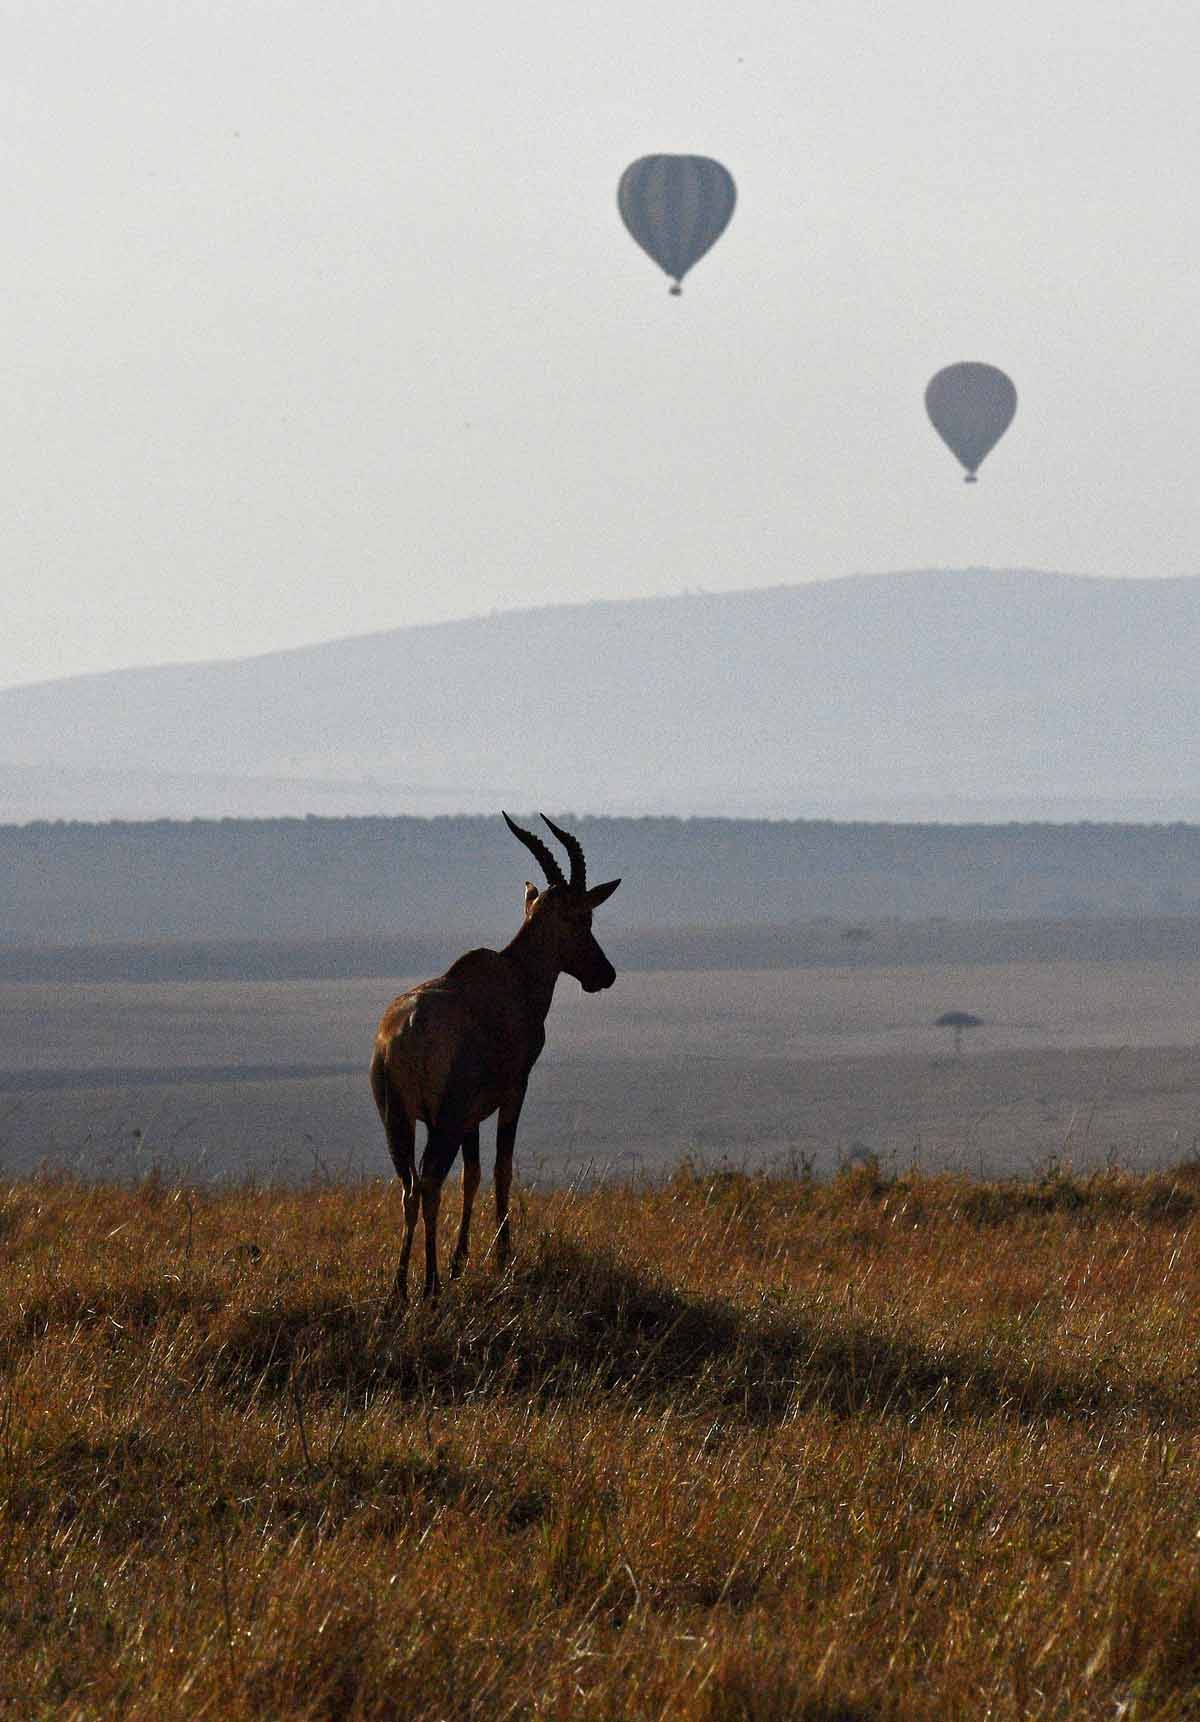 A hartebeest, an African antelope also known as kongoni, is silhouetted during the annual wildebeest migration in the Masai Mara game reserve on September 13, 2016.